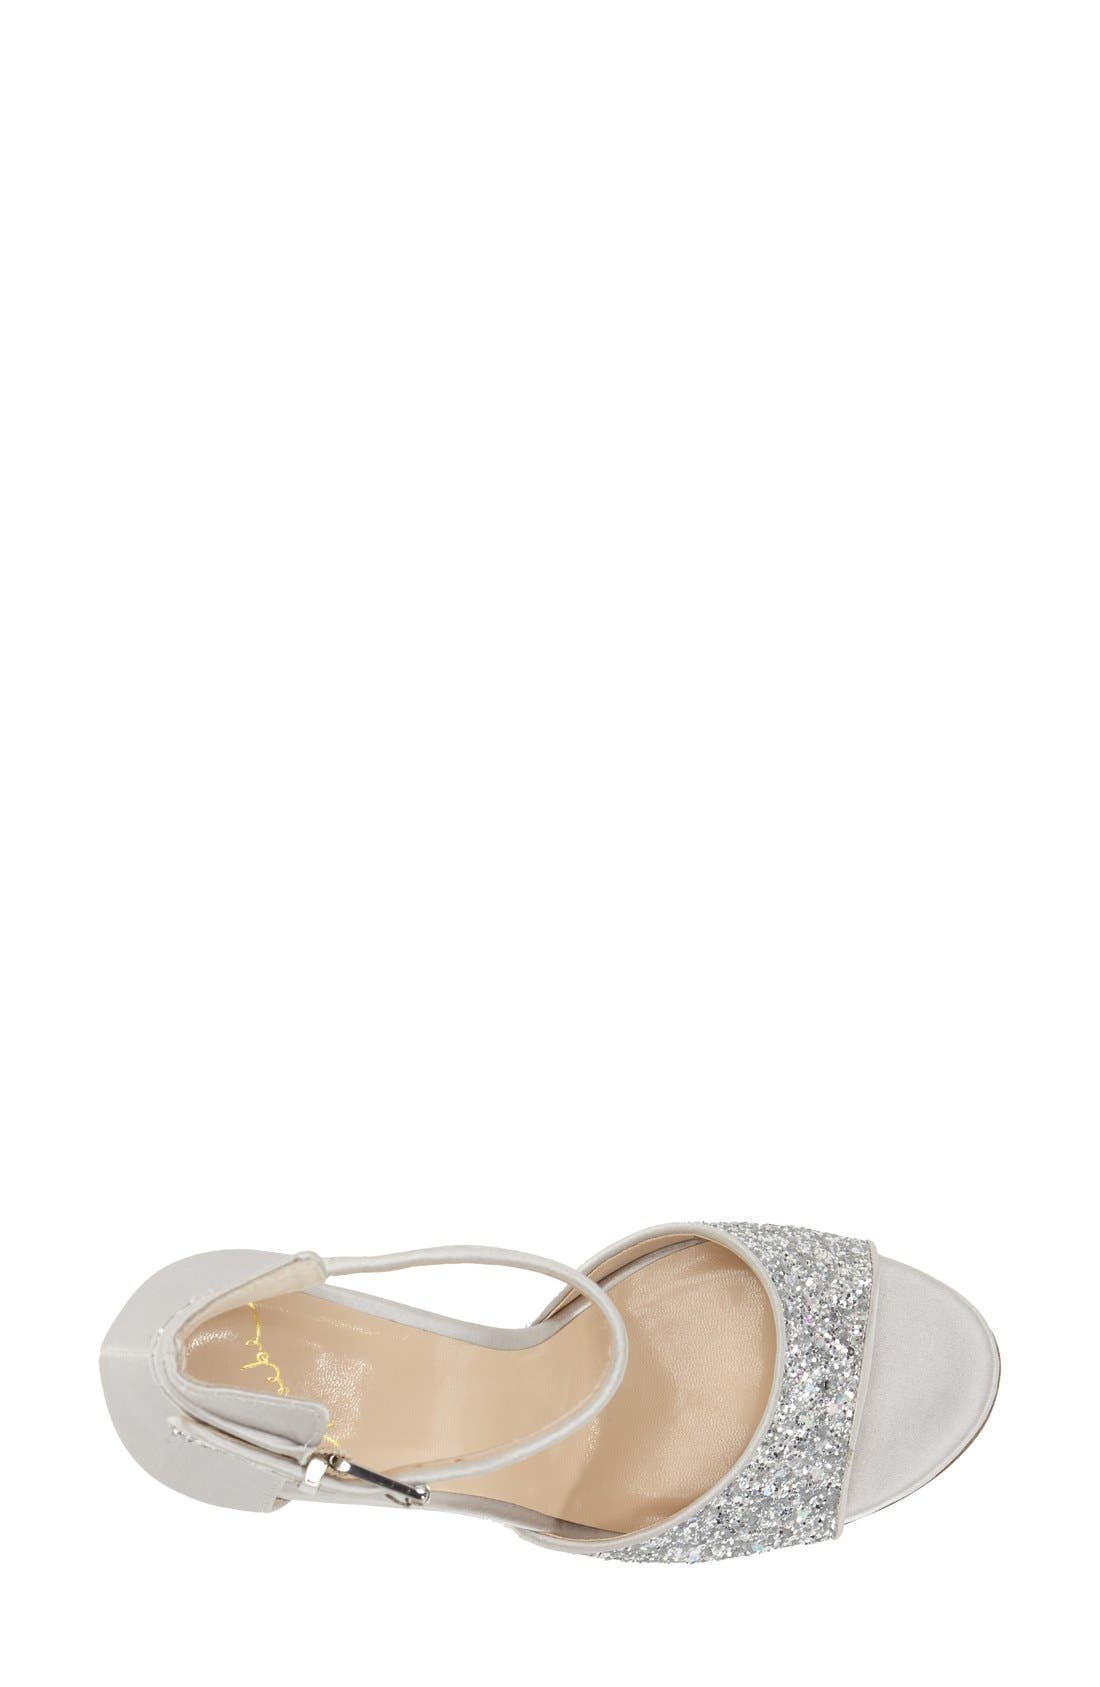 Alternate Image 3  - Kay Unger 'Phoebe Collection - Helena Glitter' Sandal (Women)